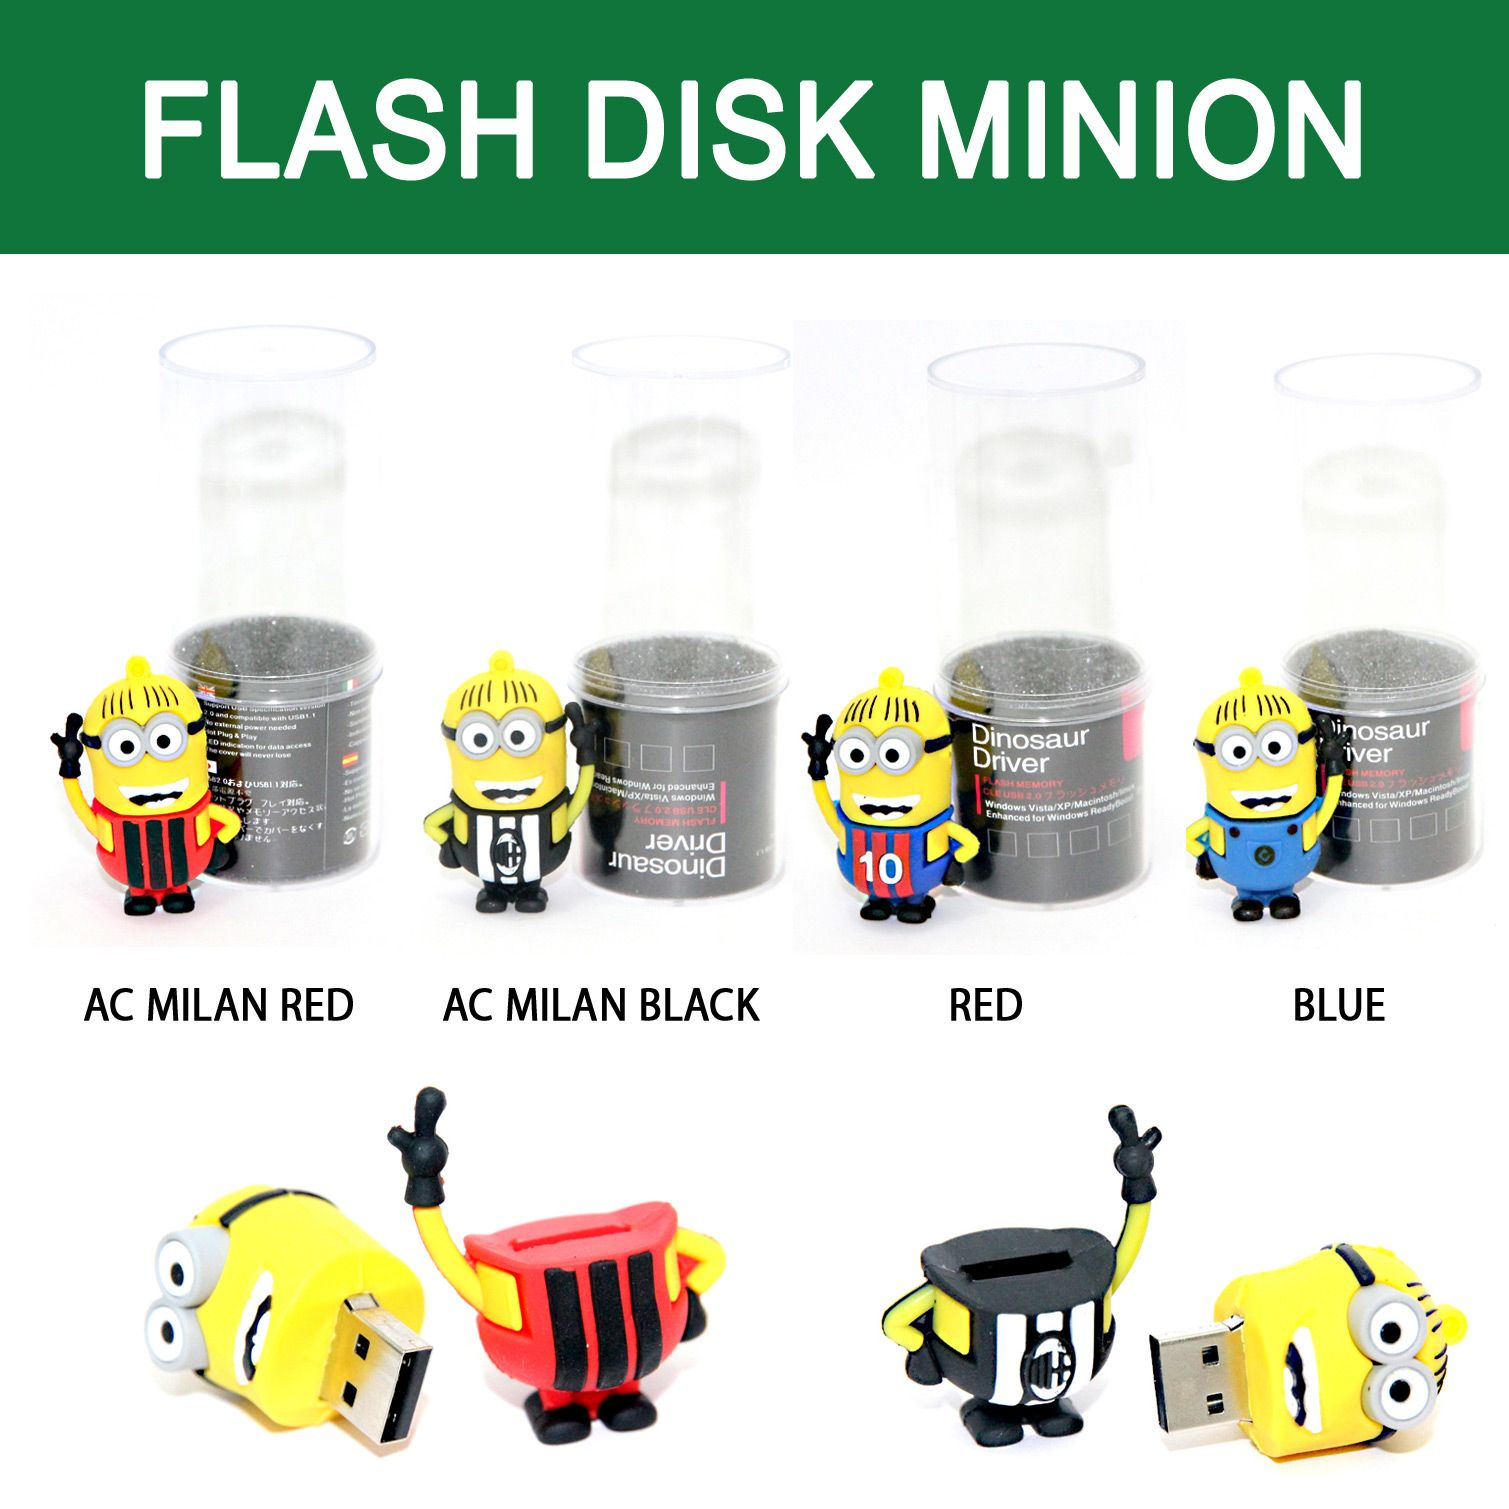 Flashdisk Unik Minion 8Gb Rp 100000 Laris123com Sms Whatssap